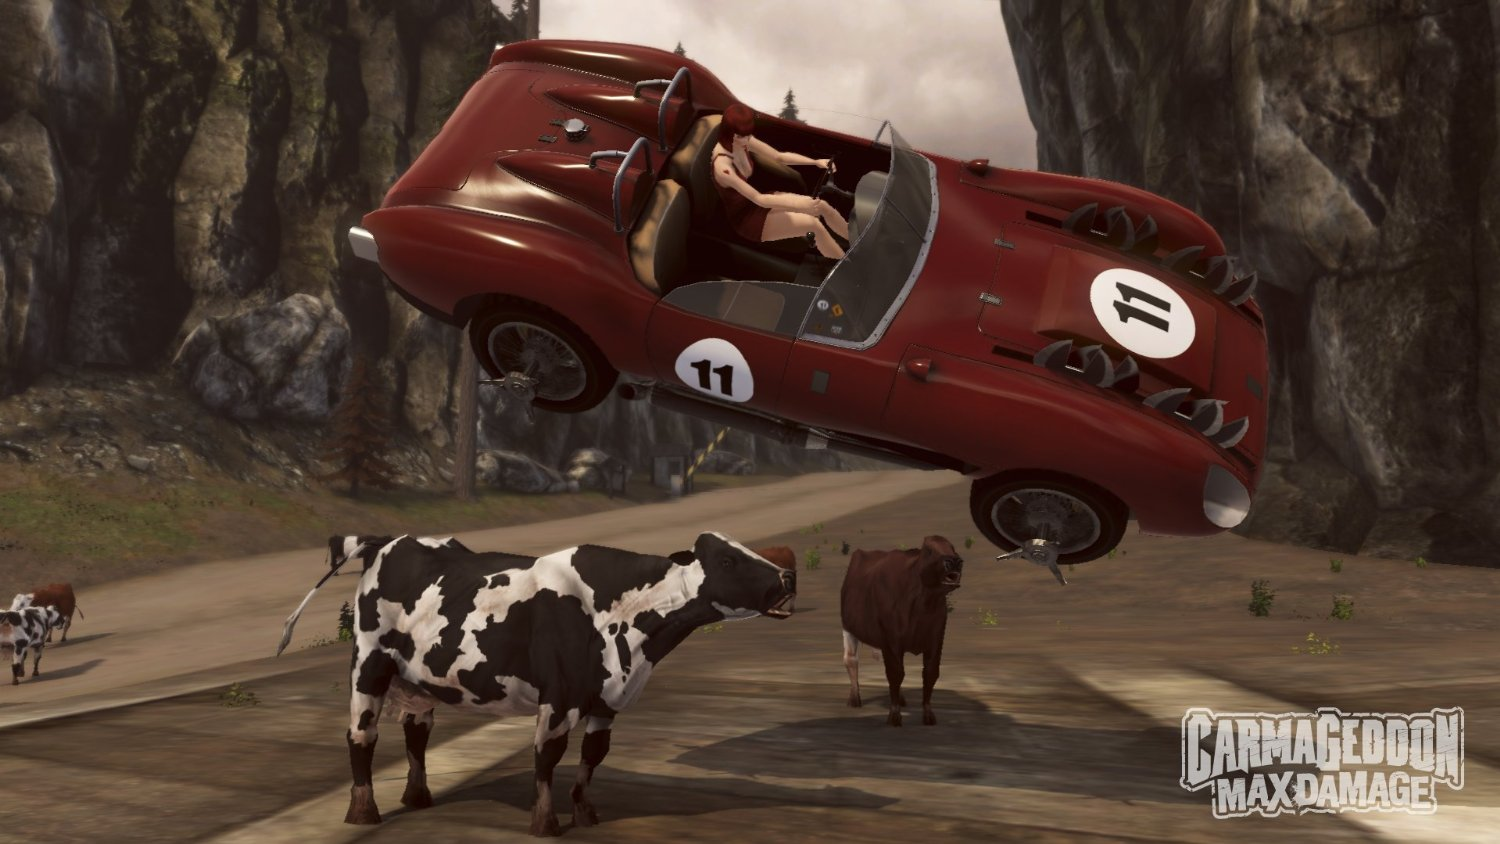 Carmageddon Max Damage screenshot convertible